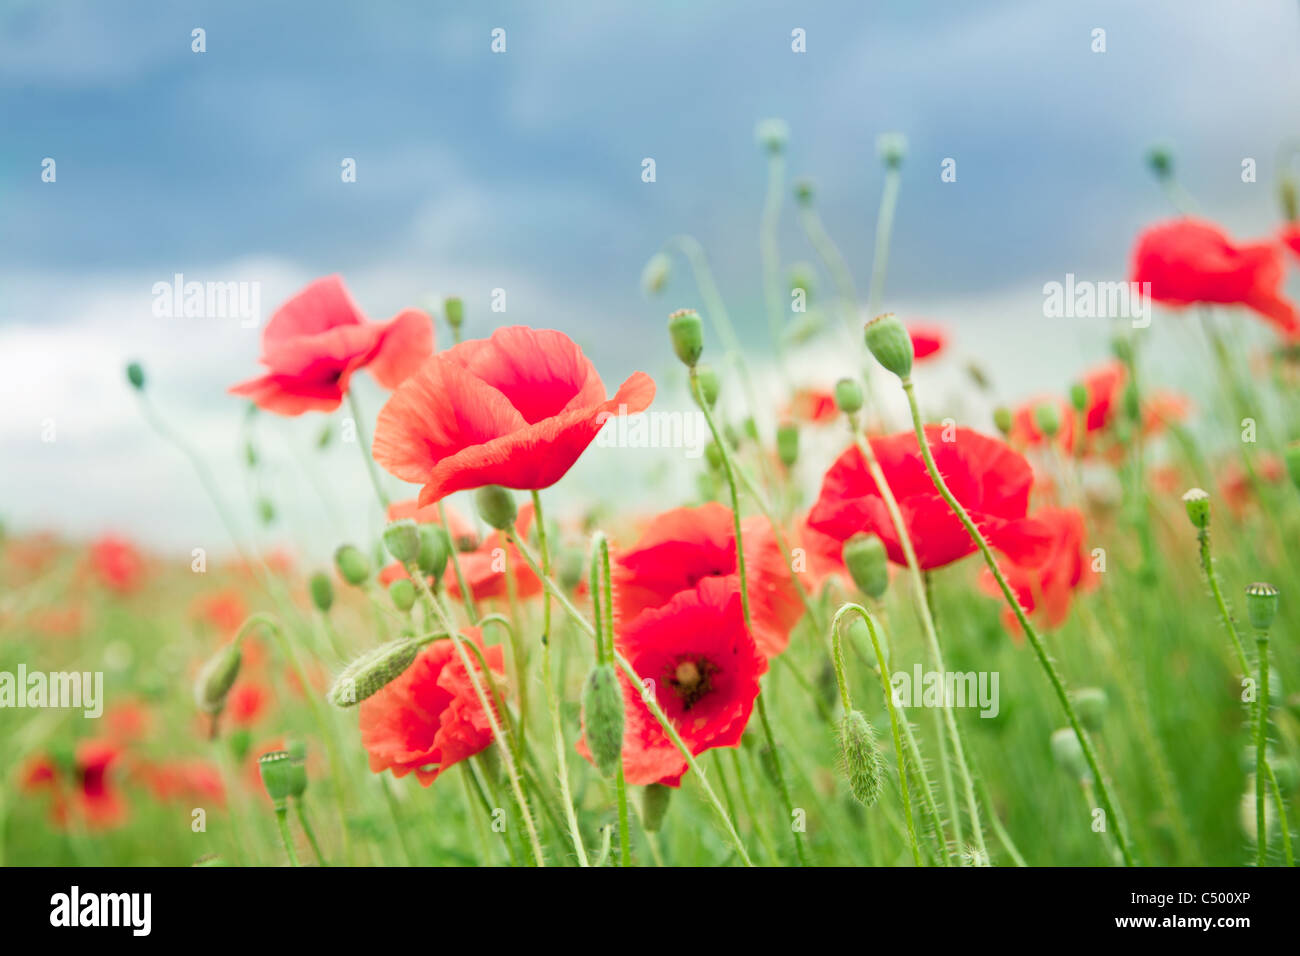 Wild poppy flowers on blue sky background. - Stock Image